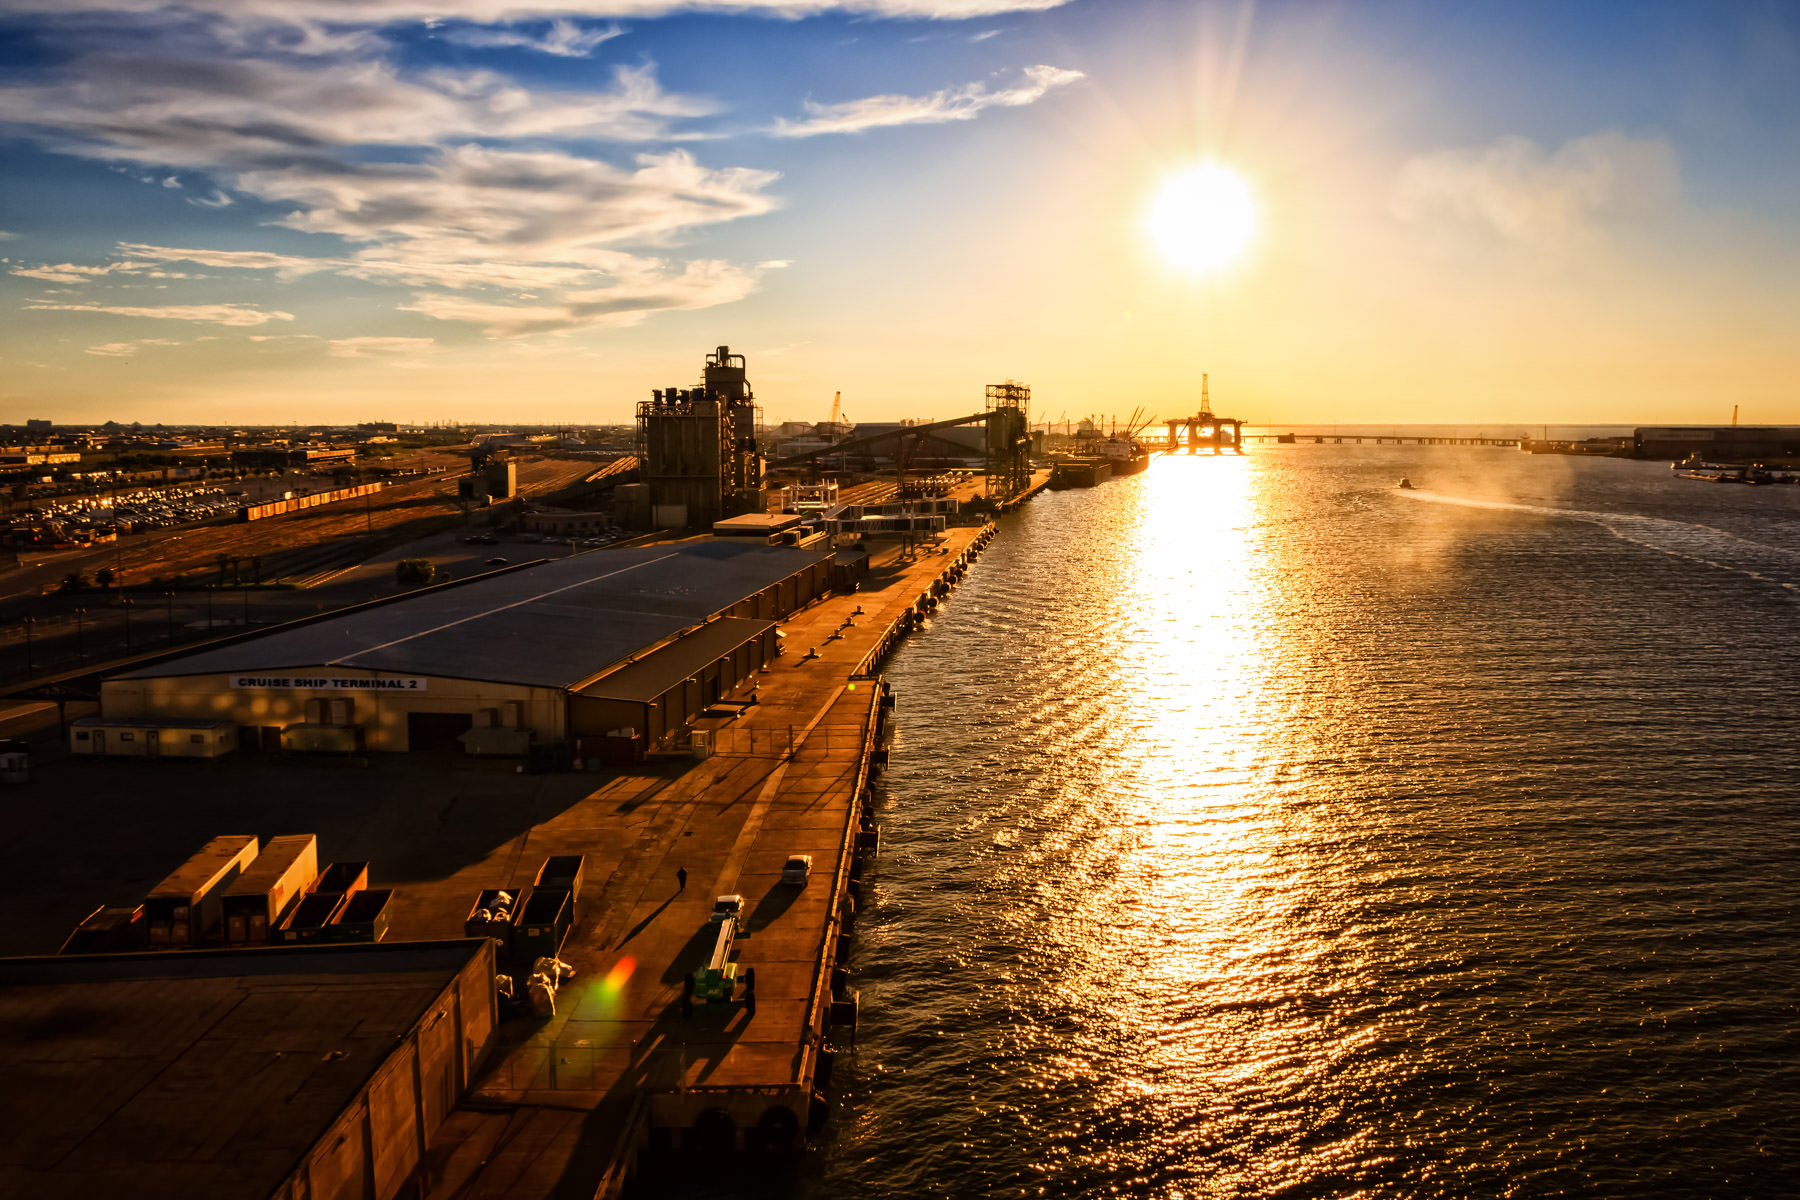 The Port of Galveston is illuminated by the sun setting along the Texas Coast.